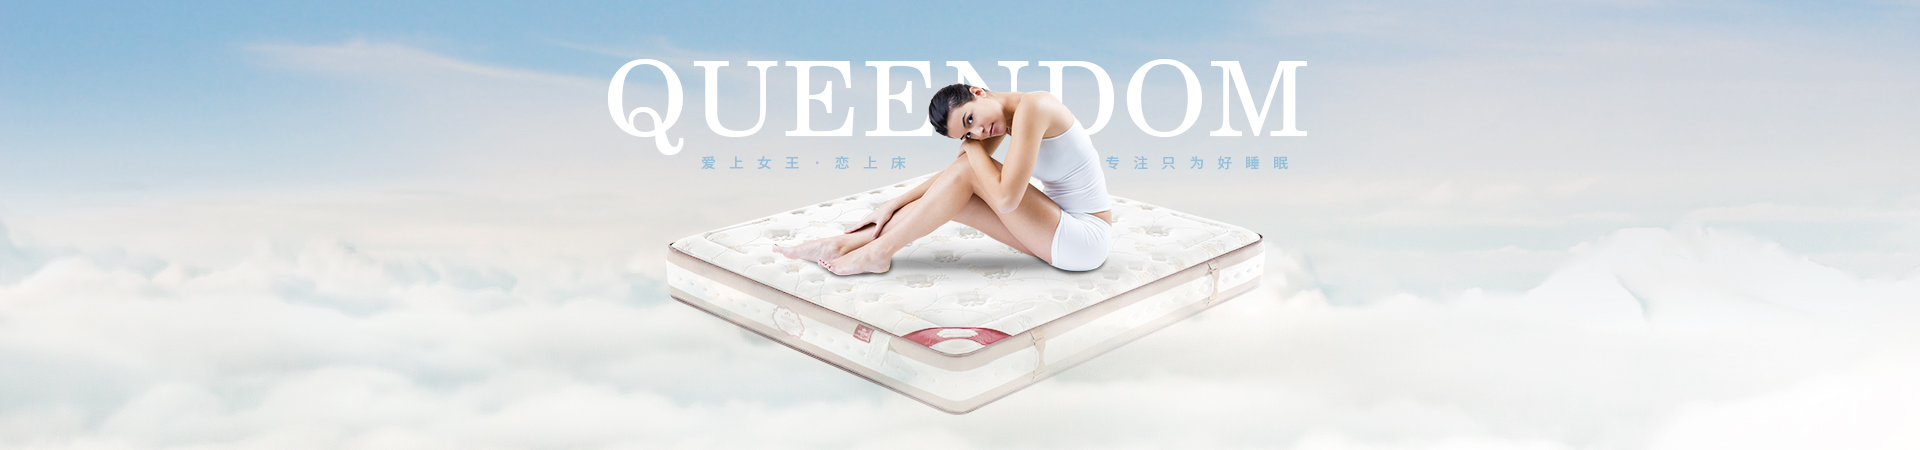 http://www.queendom.com.cn/data/upload/201912/20191213142427_153.jpg